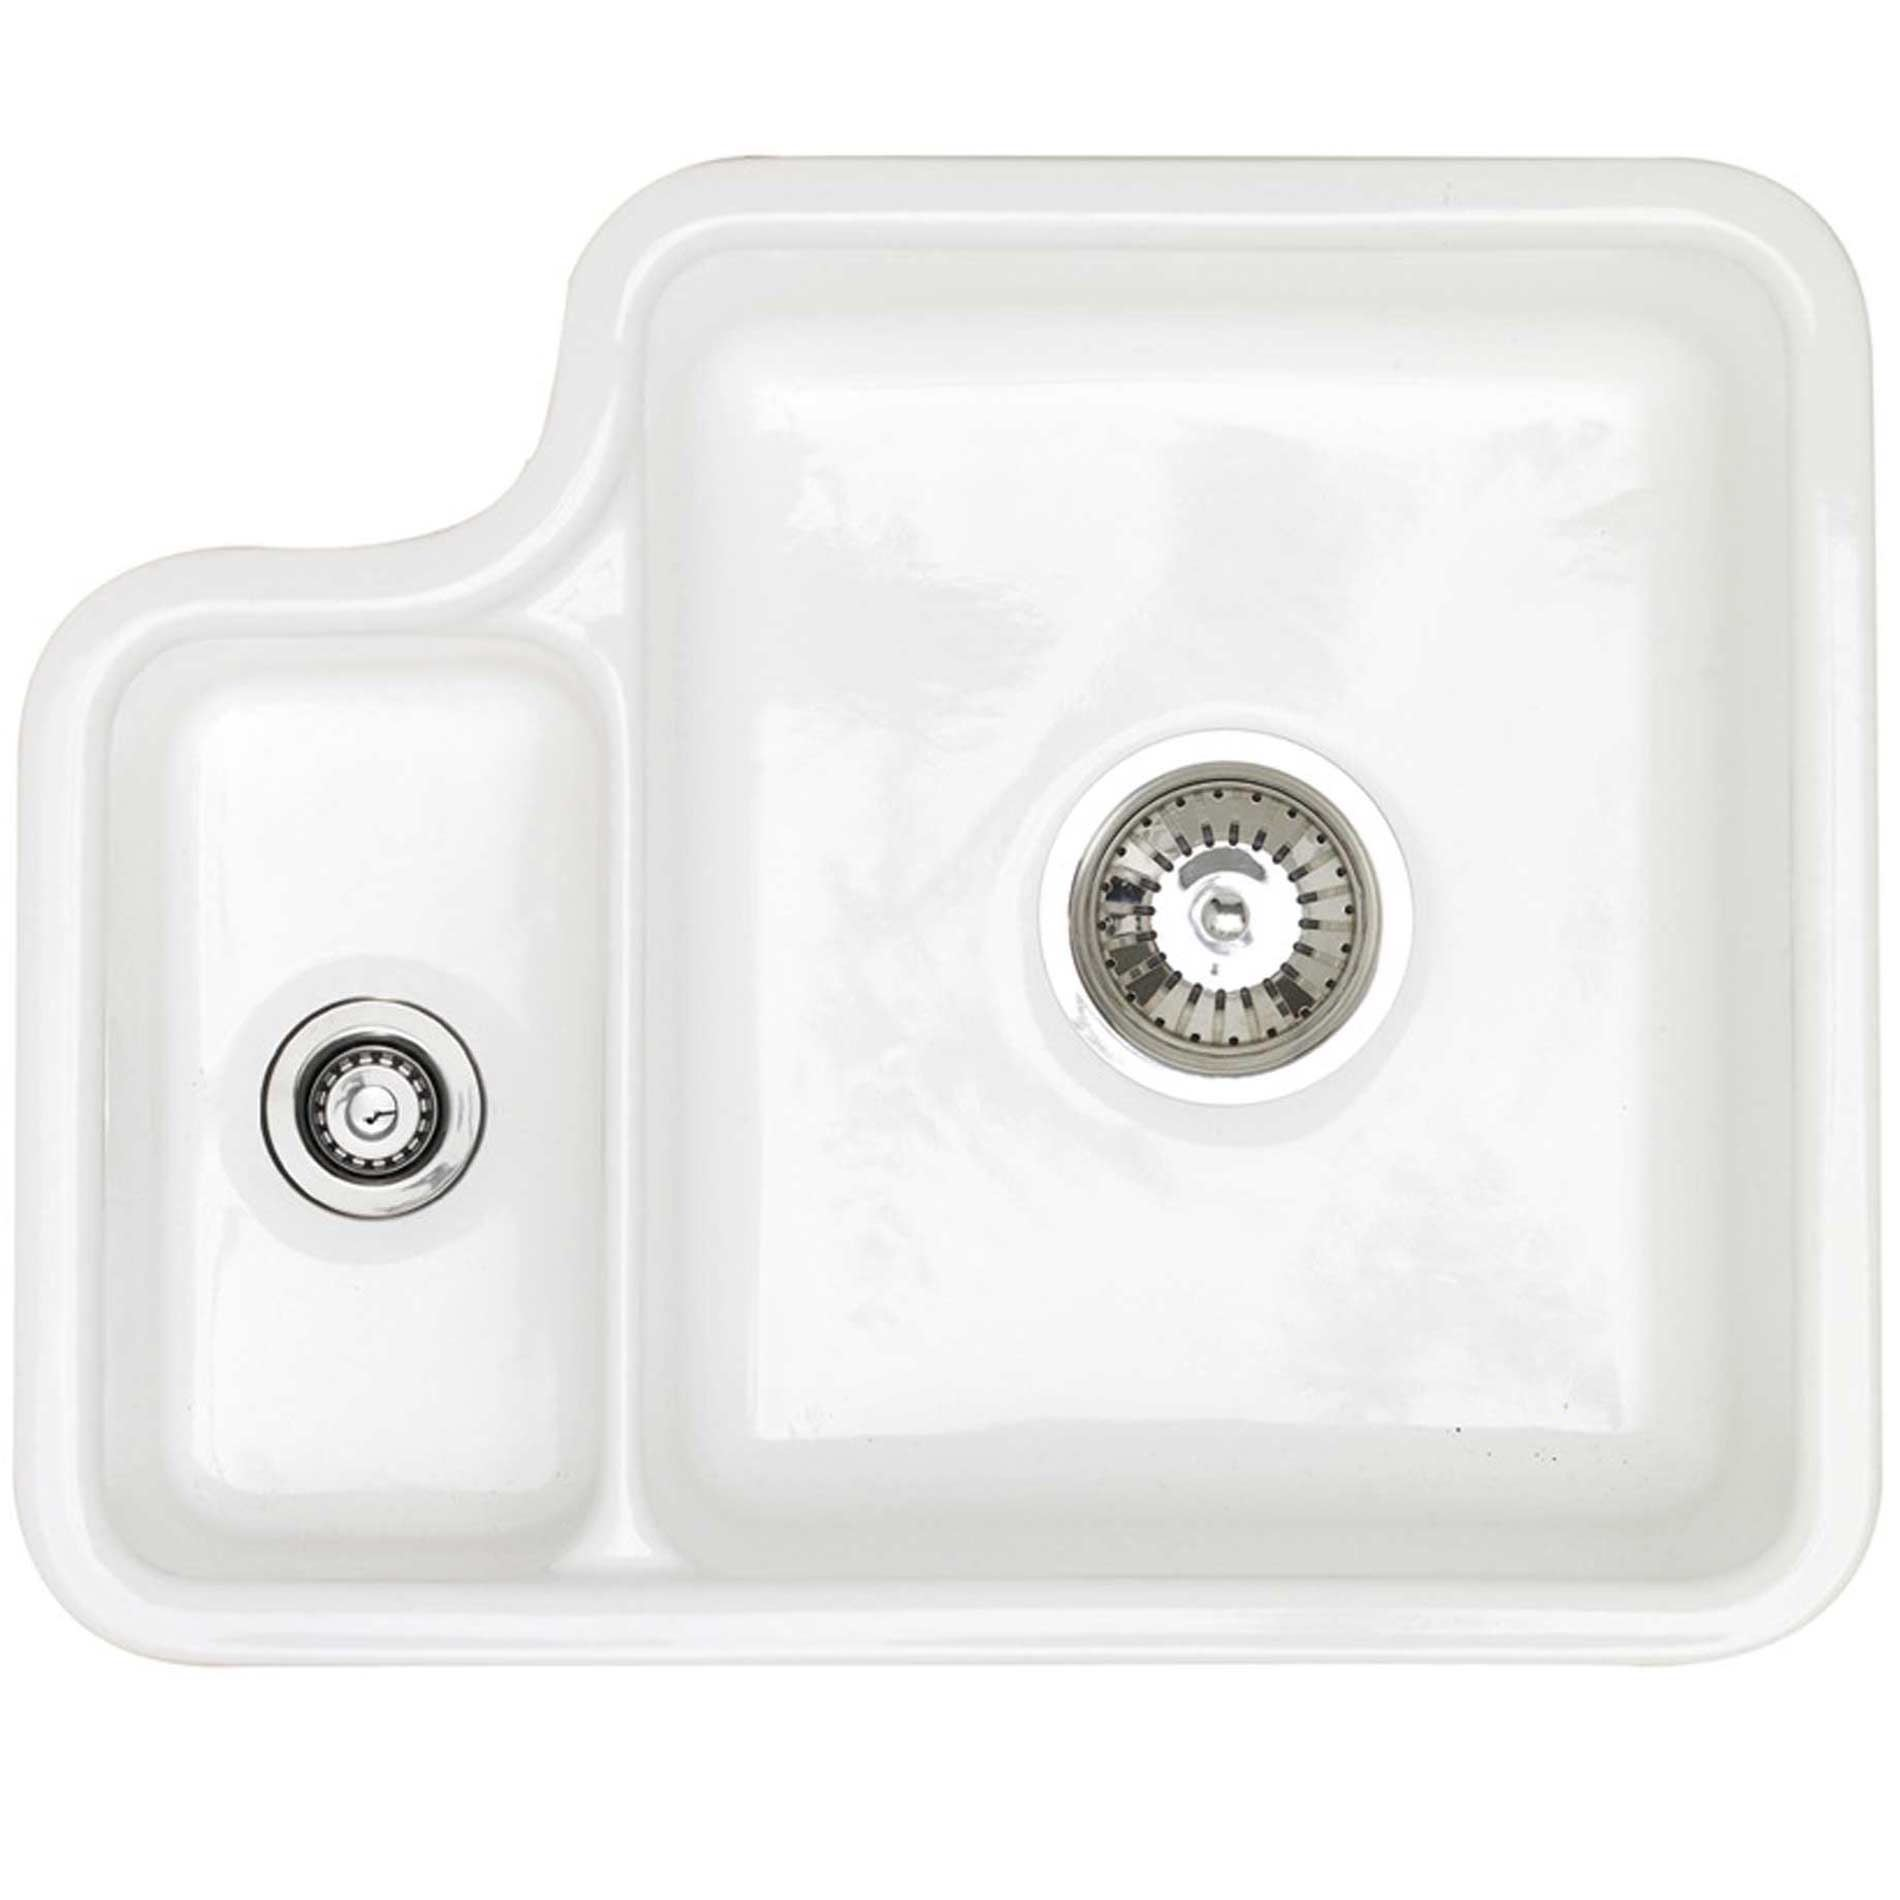 picture of lincoln 1 5 white ceramic sink astracast  lincoln 1 5 white ceramic sink   kitchen sinks  u0026 taps  rh   kitchensinksandtaps co uk